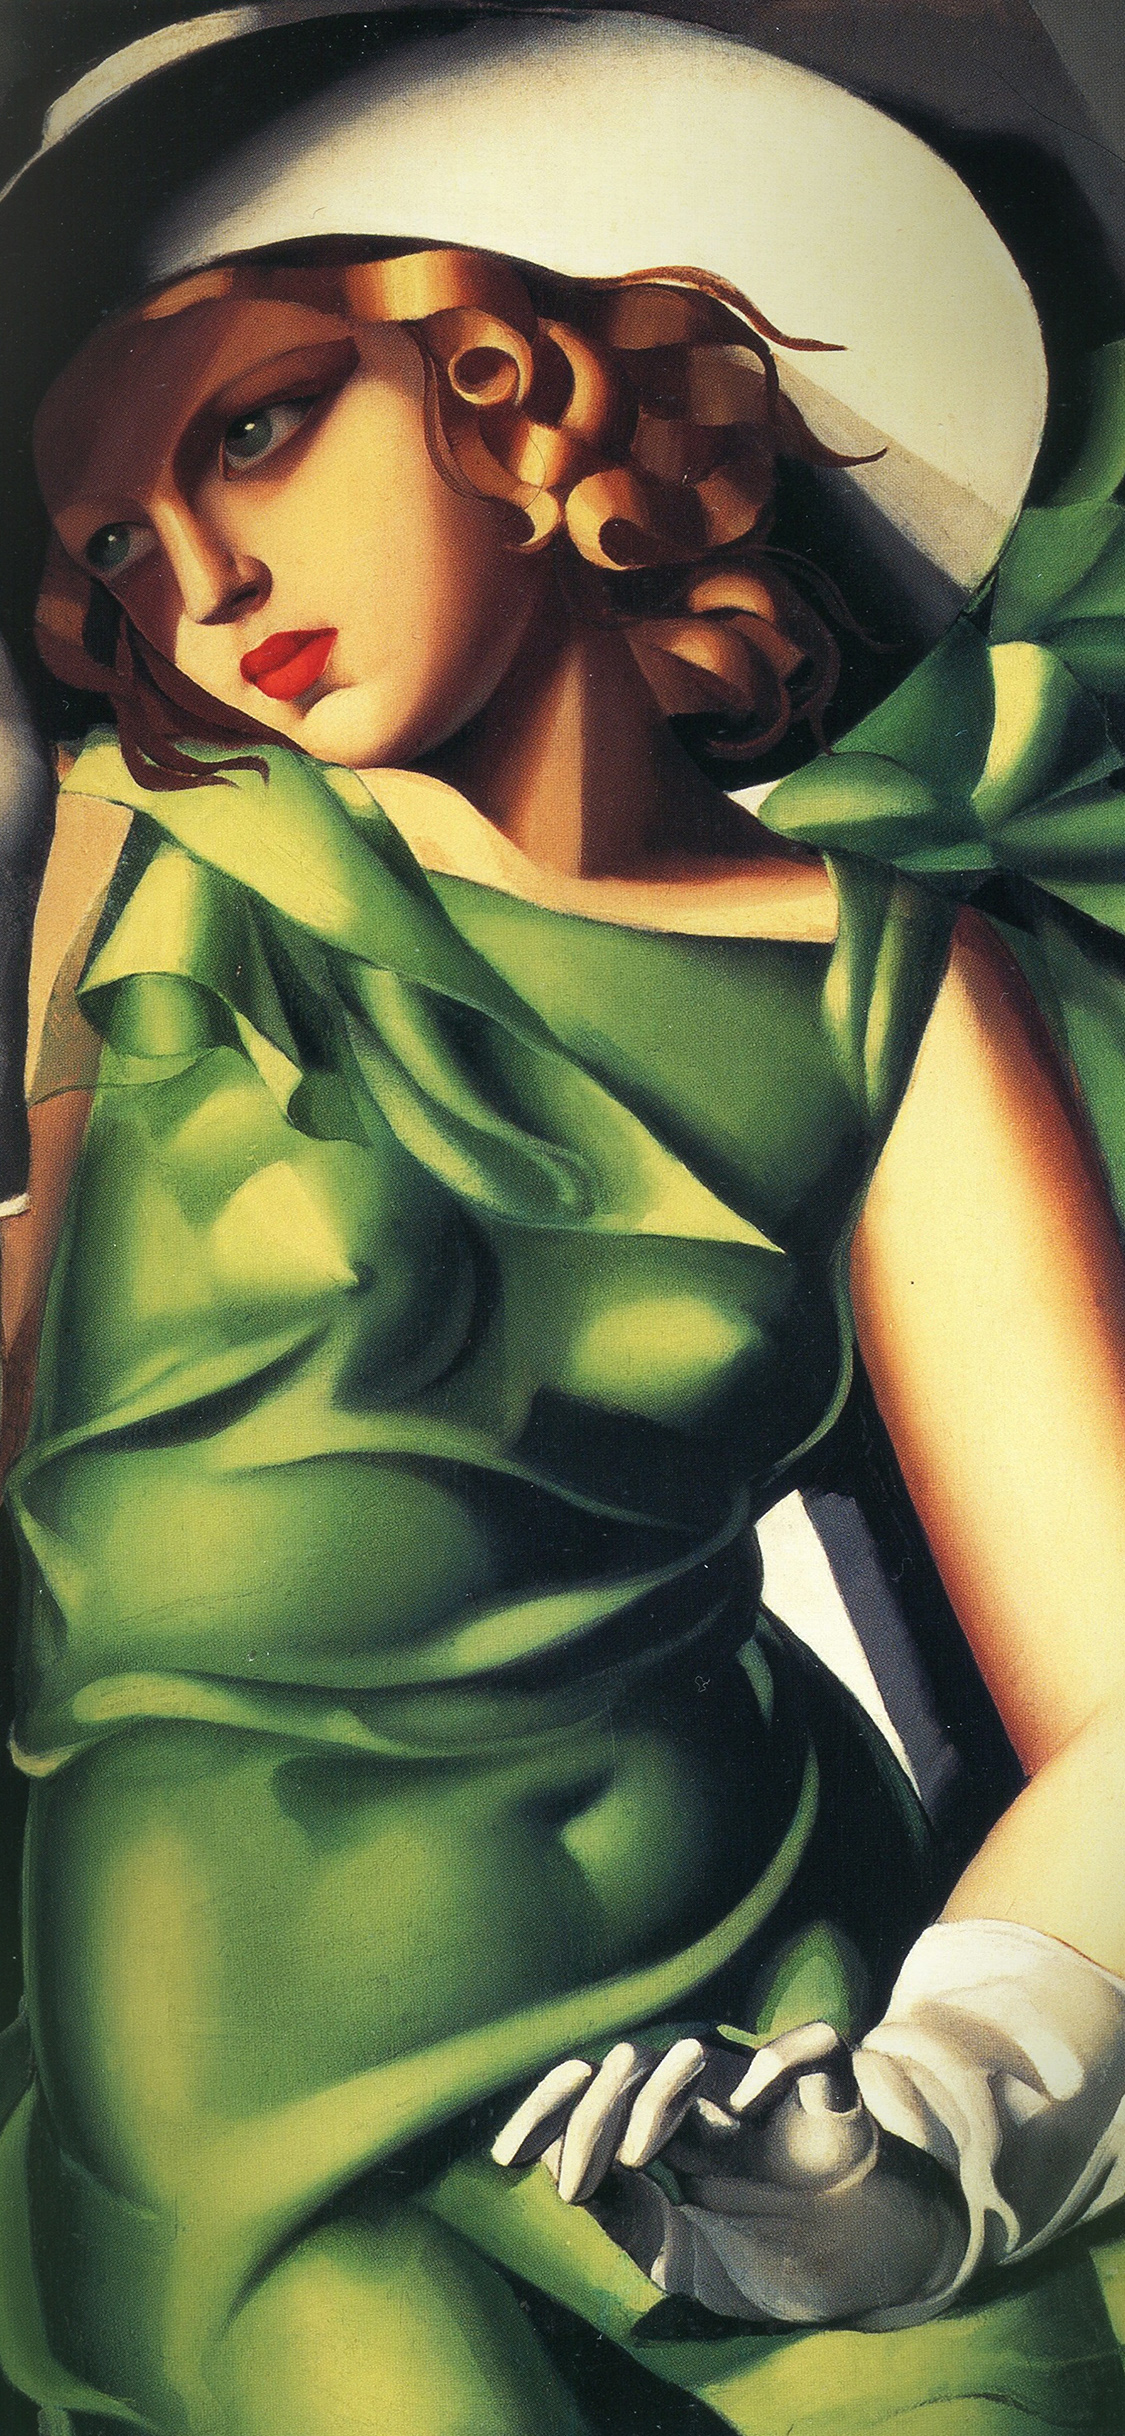 Car Logo Wallpaper Iphone 5 Aw05 Tamara De Lempicka Illustration Art Classic Paint